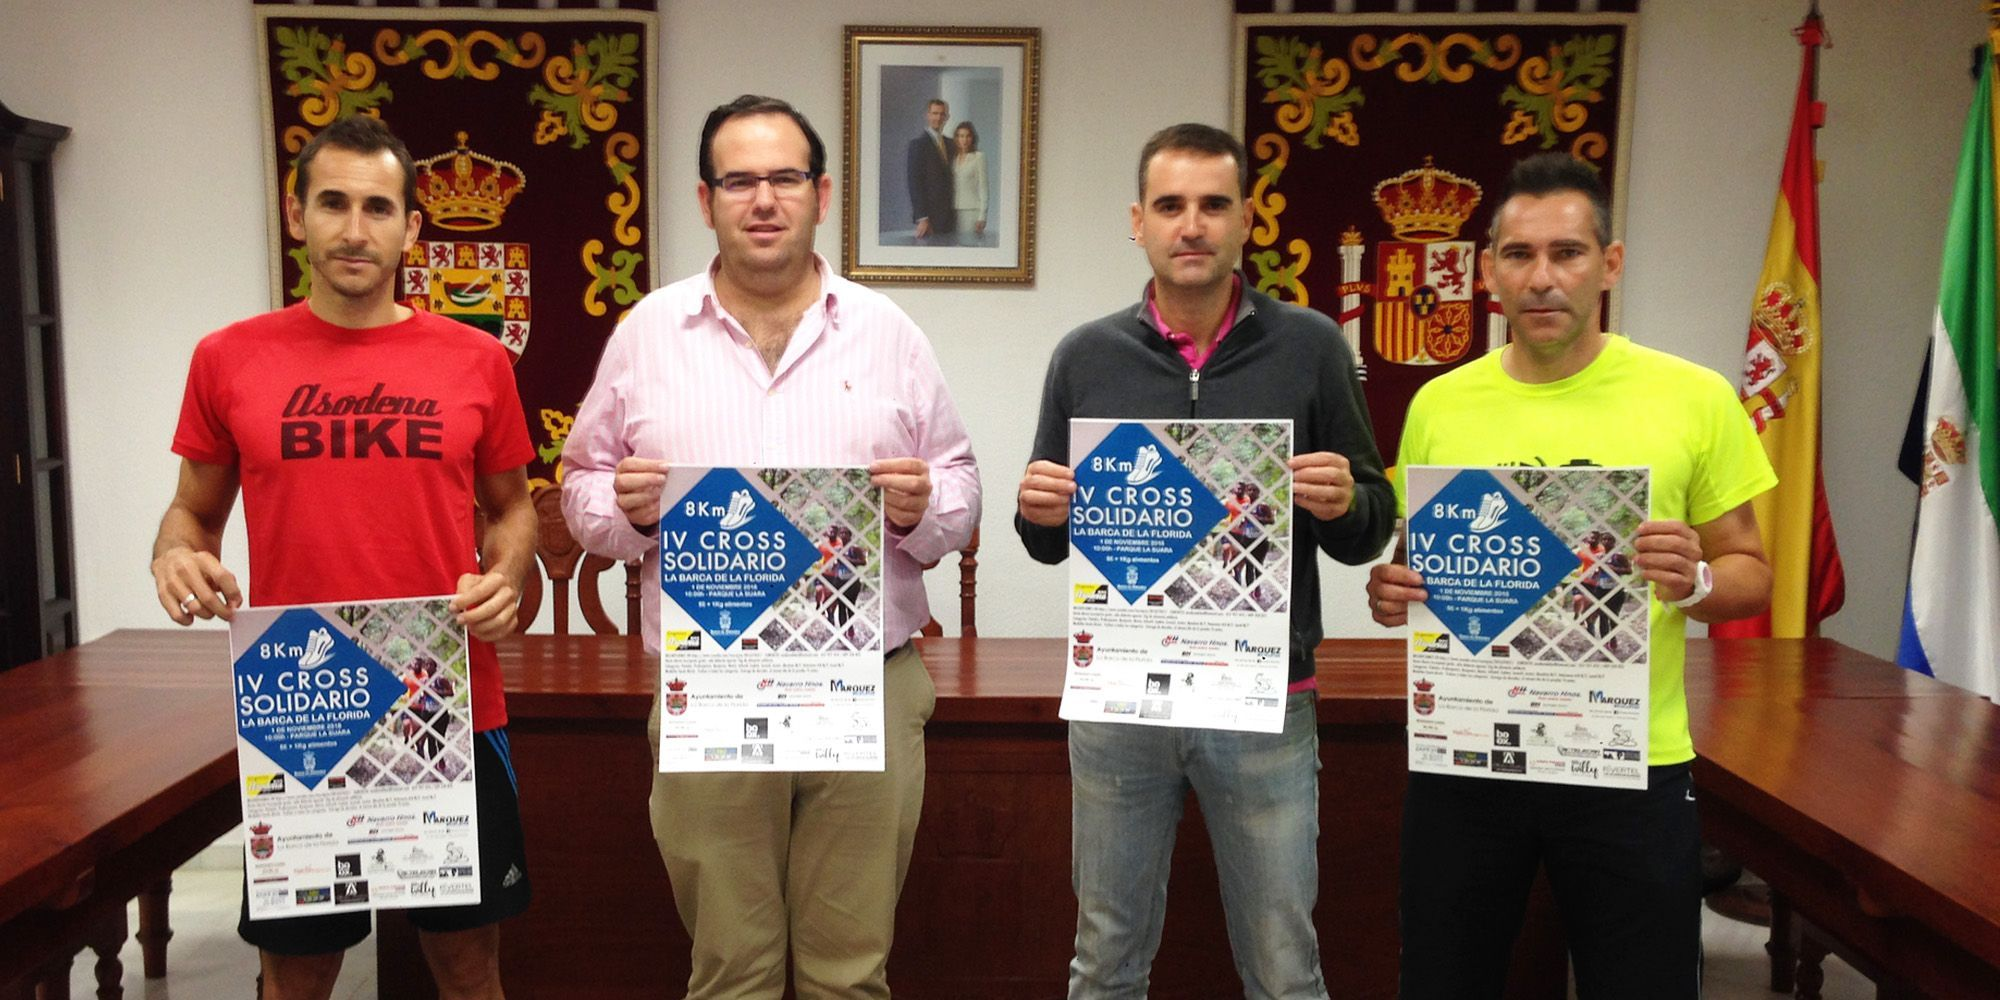 iv-cross-solidario-la-barca-1